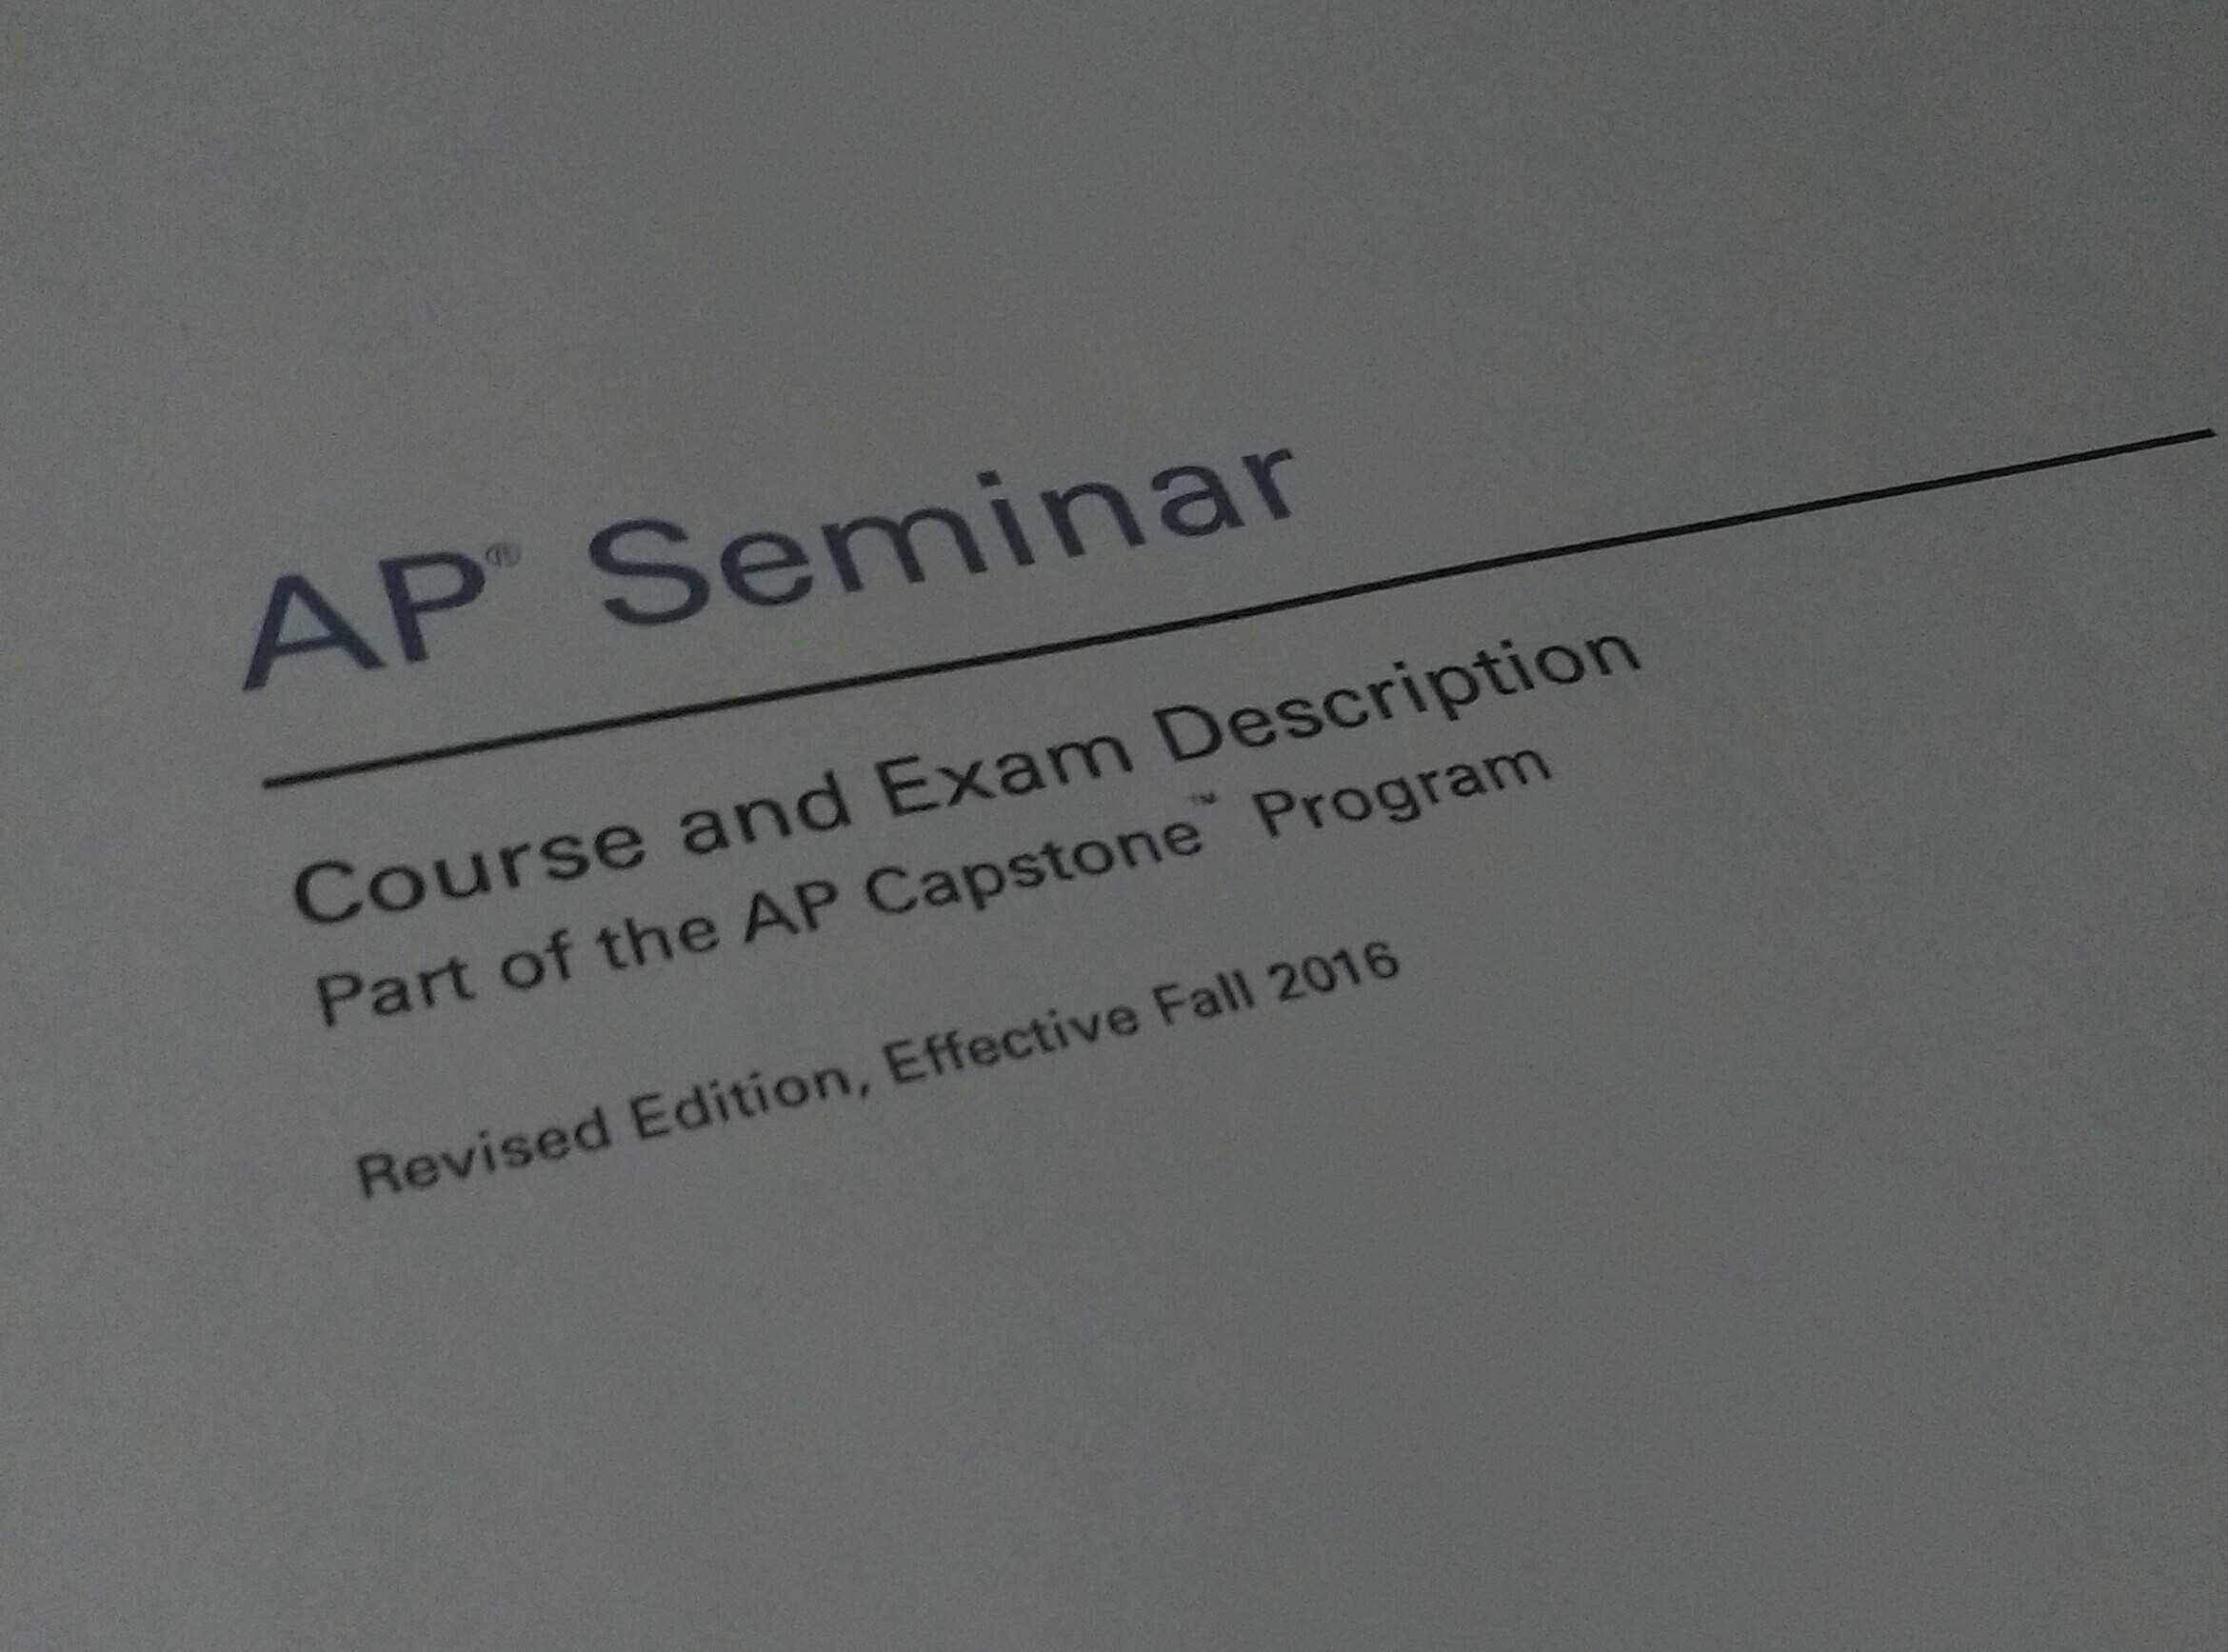 Successes and Struggles for AP Seminar During First Semester at HHS